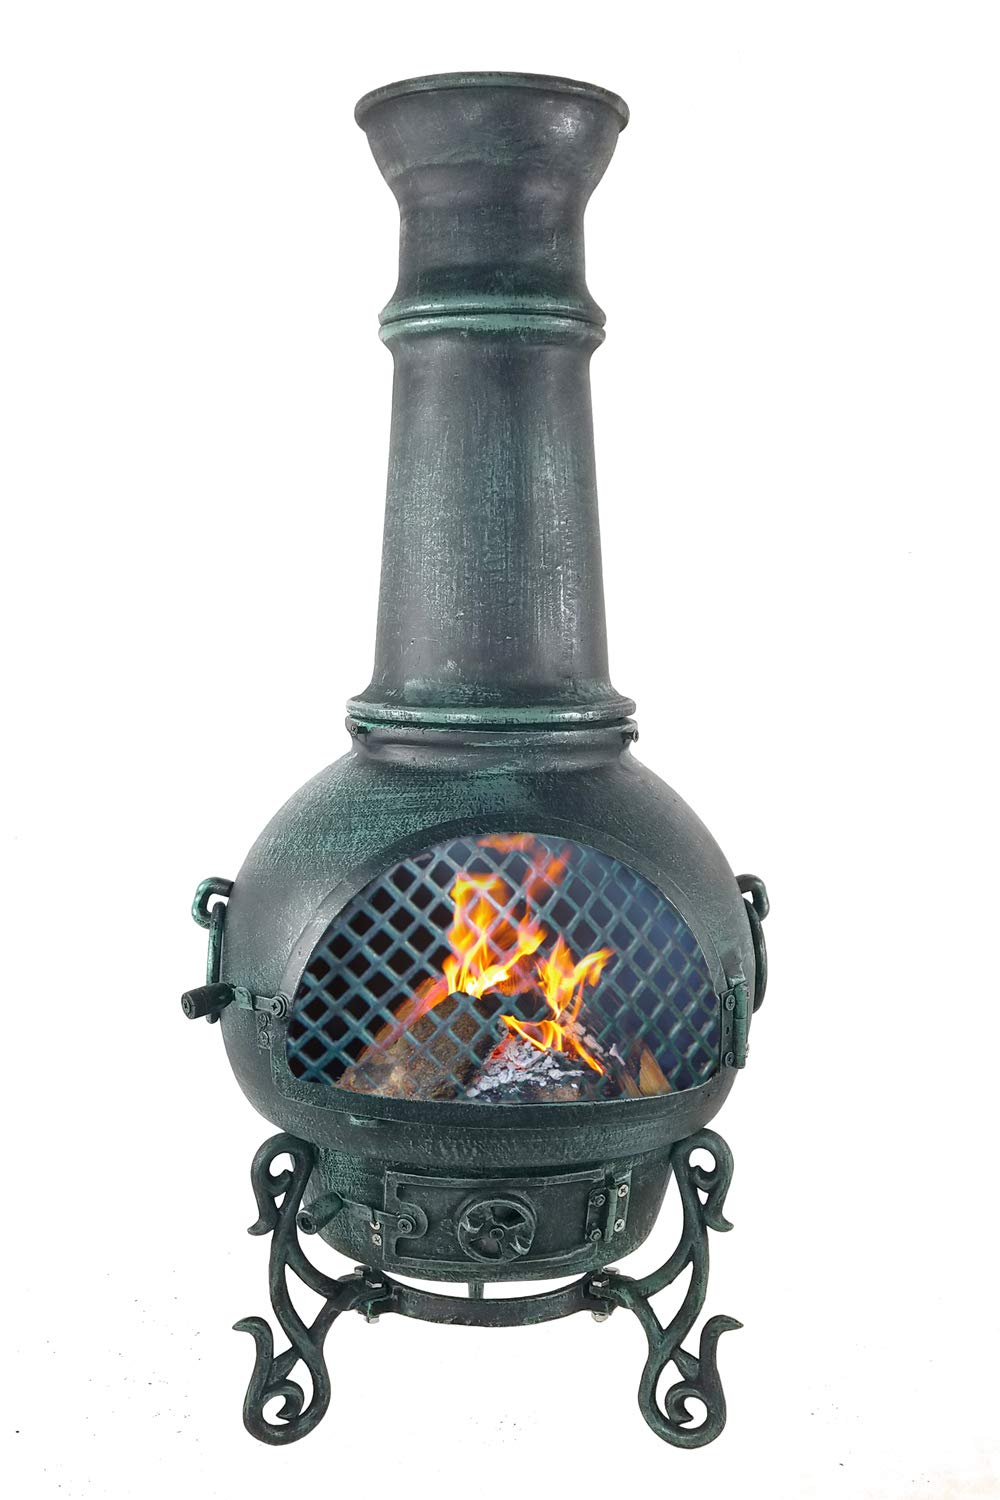 The Blue Rooster CAST Aluminum Gatsby Wood Burning Chiminea in Antique Green. by The Blue Rooster